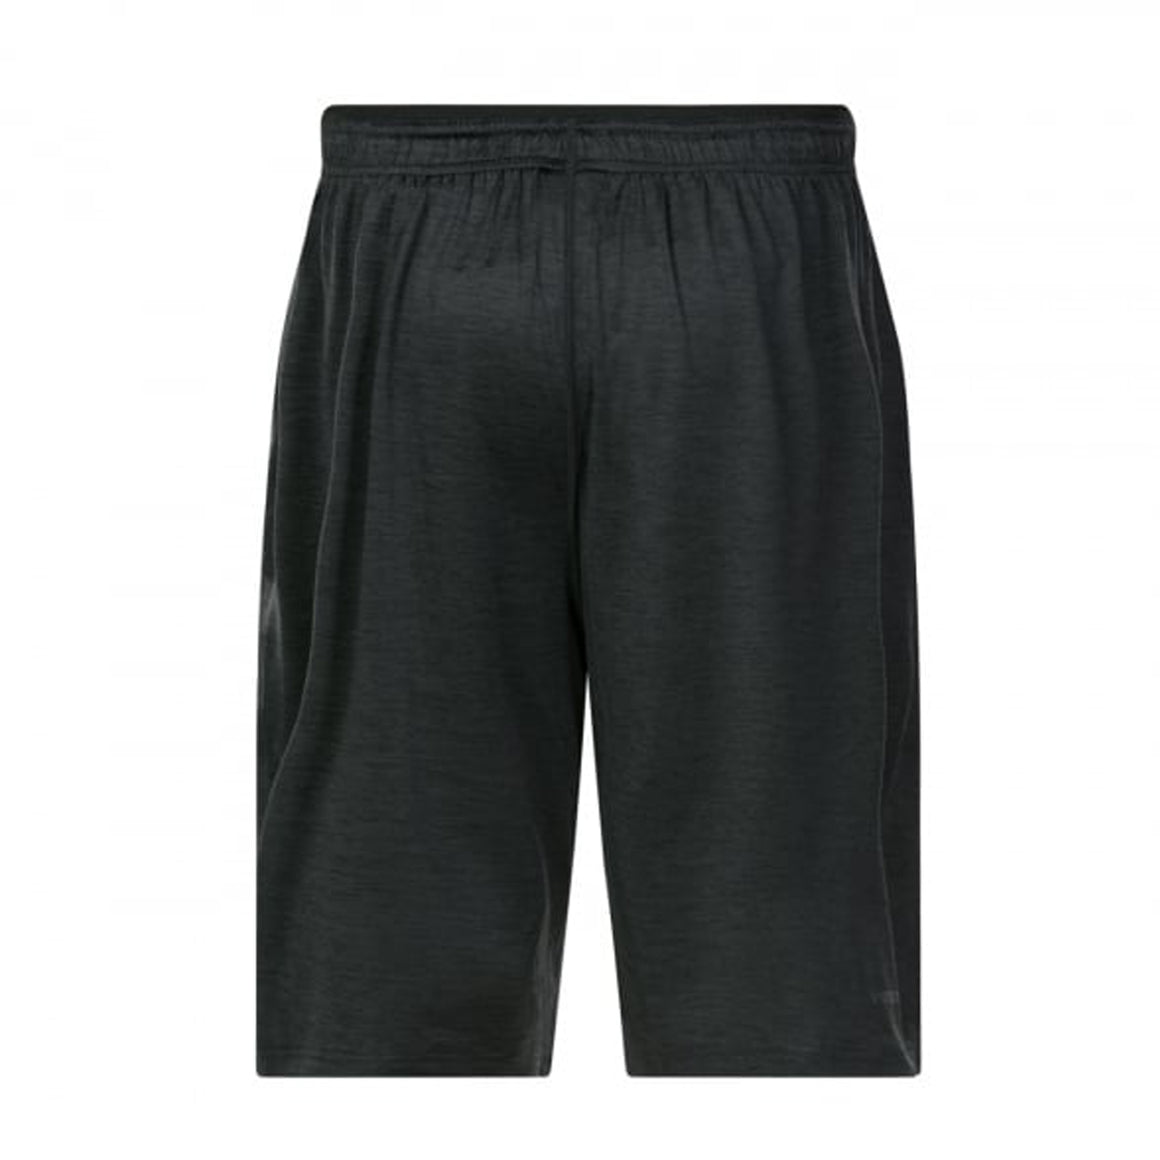 Vapodri Stretch Knit Short for Men in Black